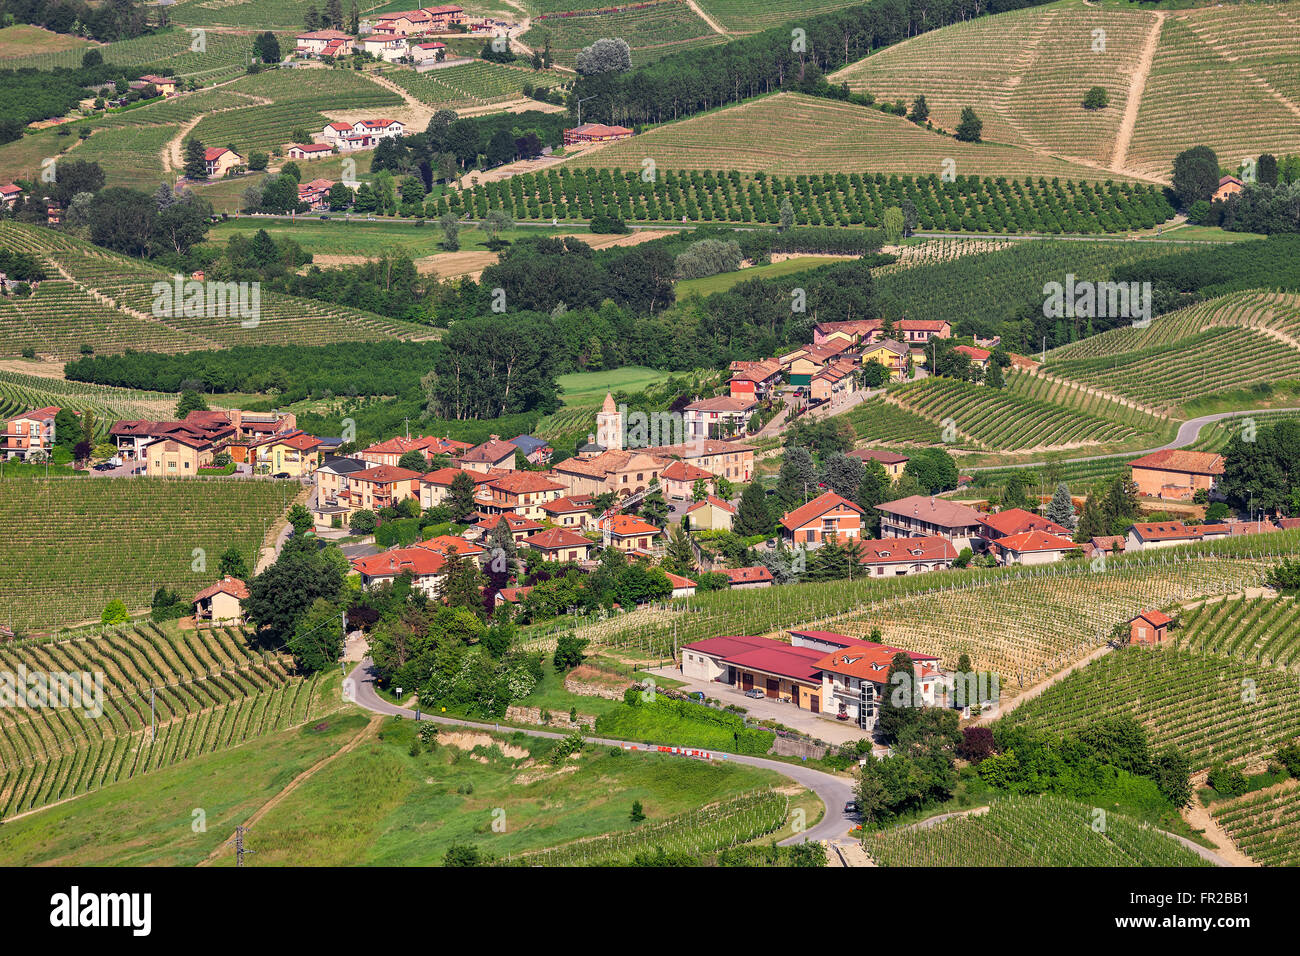 Small town among green hills of Piedmont, Northern Italy. - Stock Image